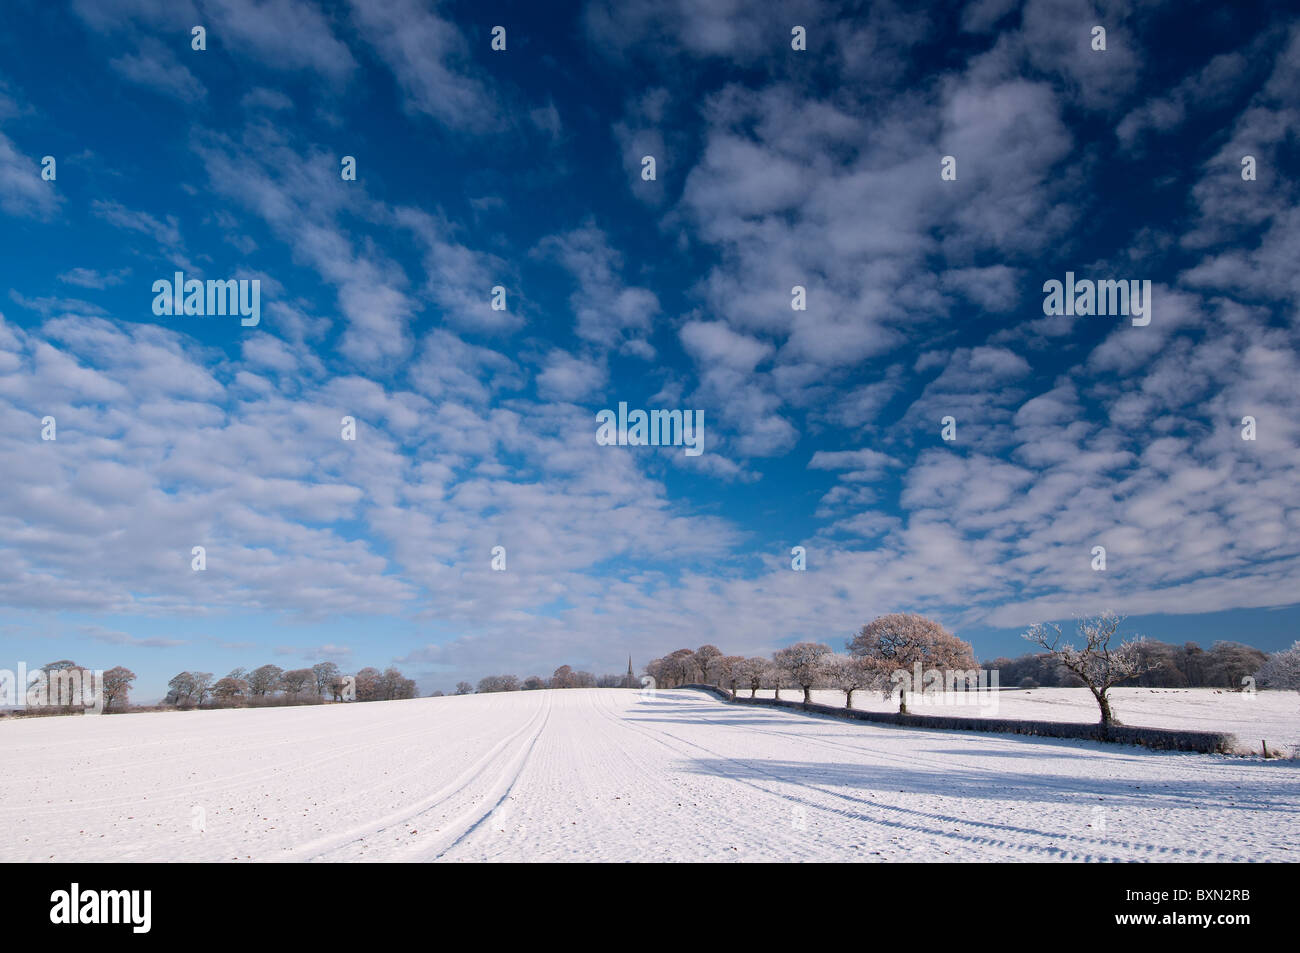 Winter comes to Keele, Staffordshire - Stock Image